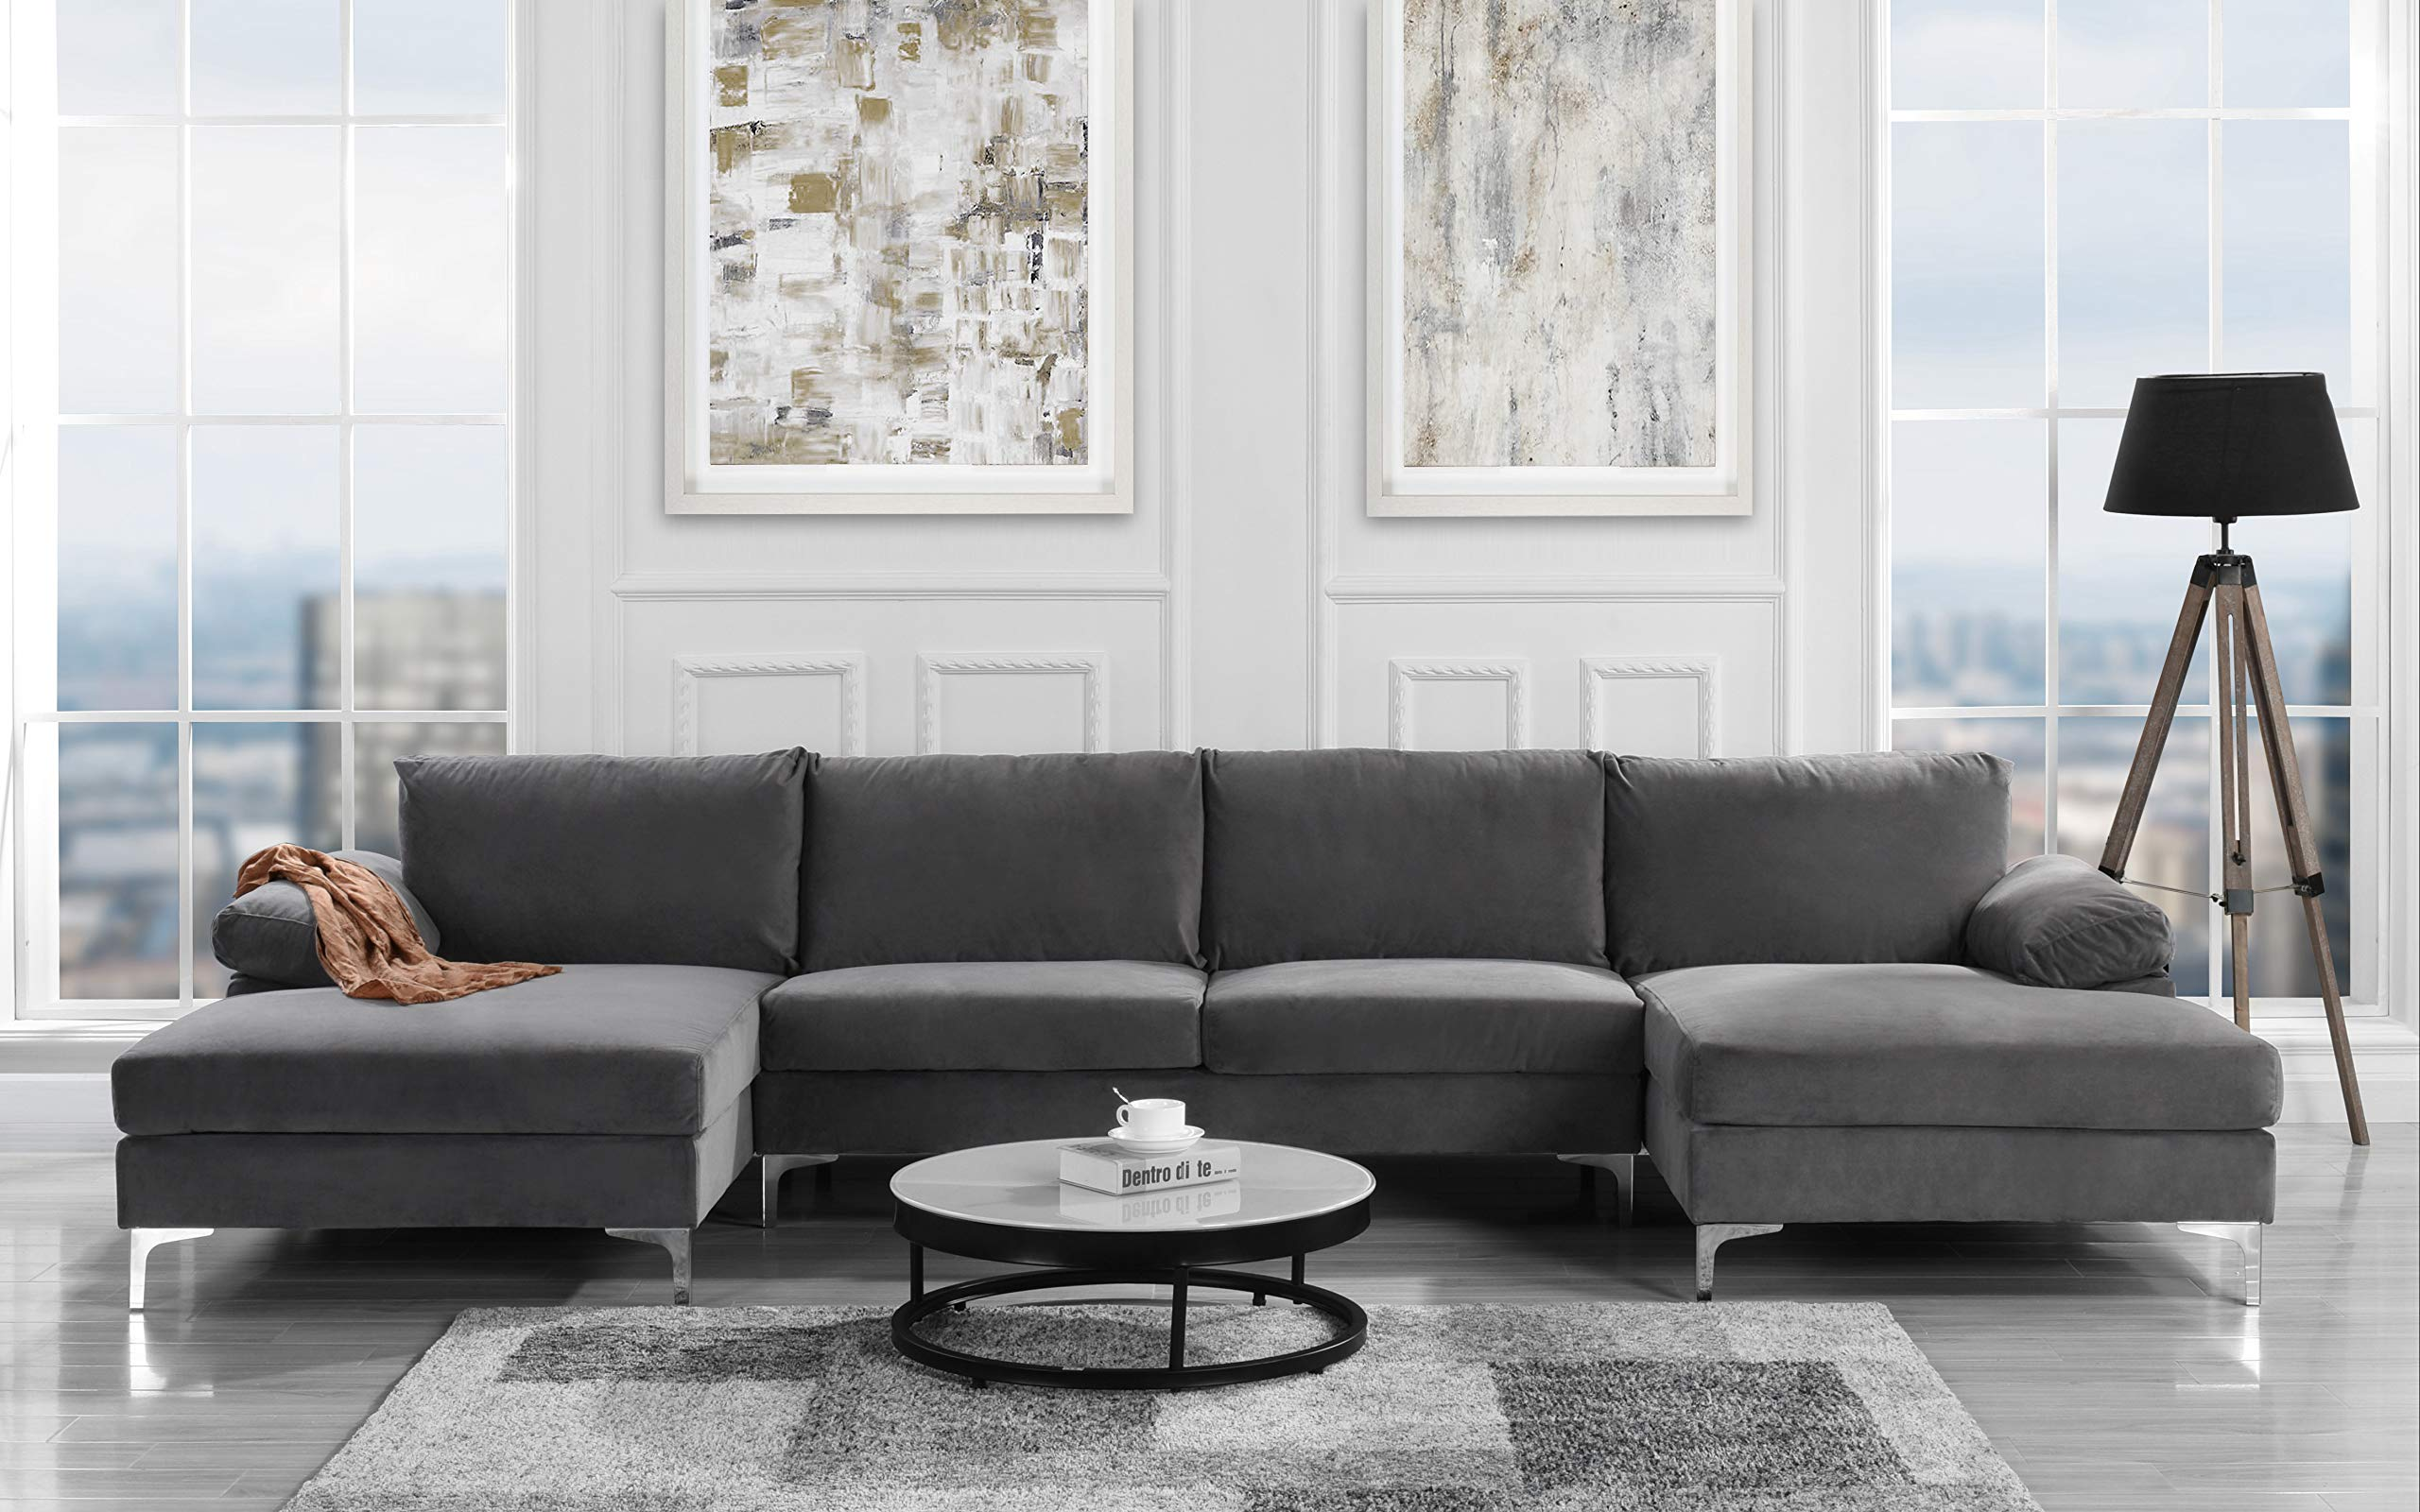 Modern Large Velvet Fabric U-Shape Sectional Sofa, Double Extra Wide Chaise Lounge Couch (Grey) by Sofamania